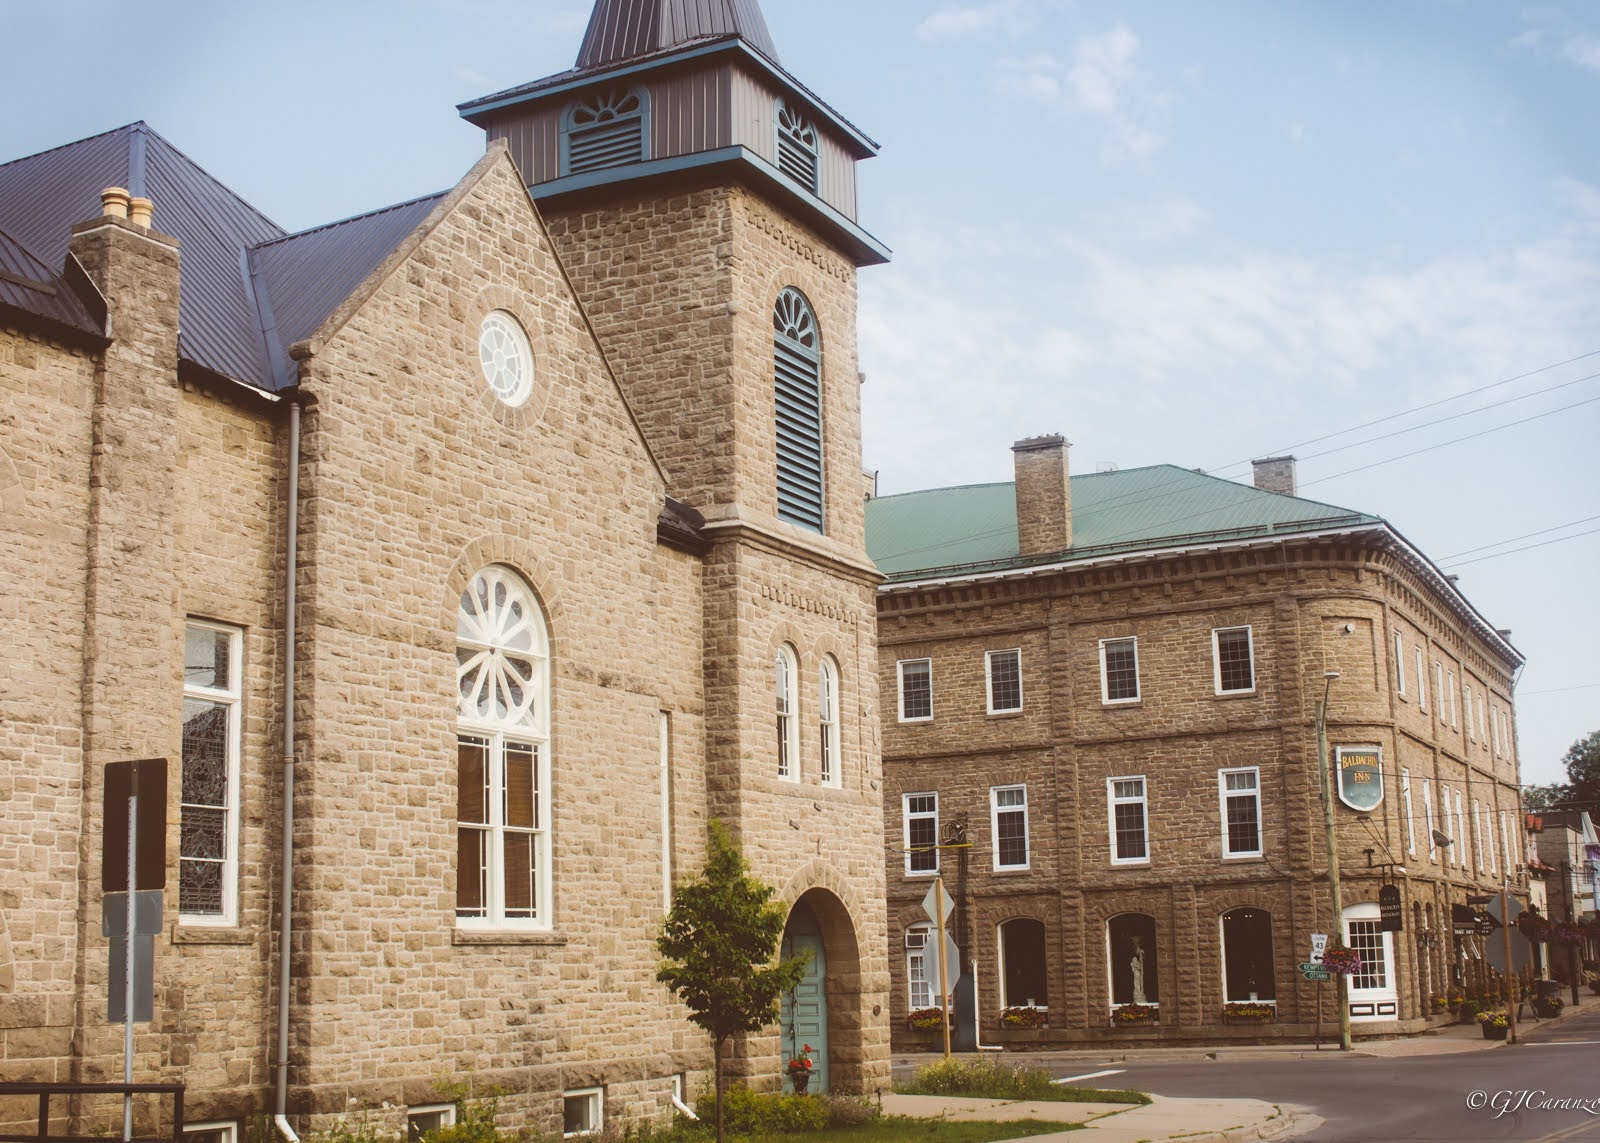 Short Day Trip from Ottawa: Travel Photo Diary from Merrickville-Wolford, Ontario, Canada